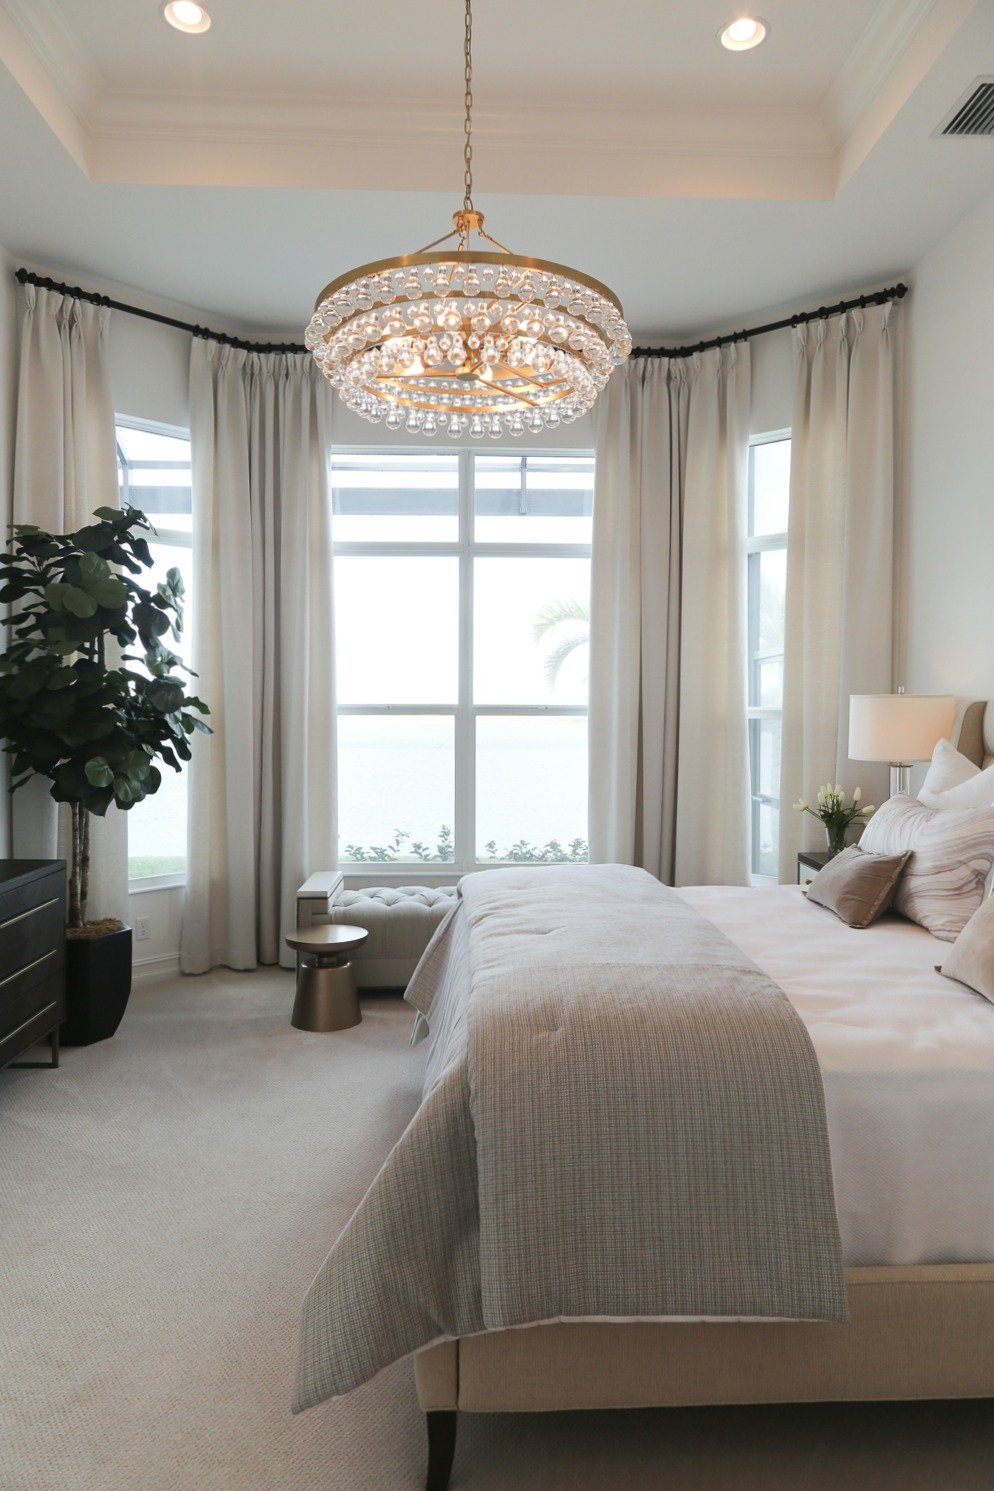 Light and airy bedroom design. Naples Parade of Homes